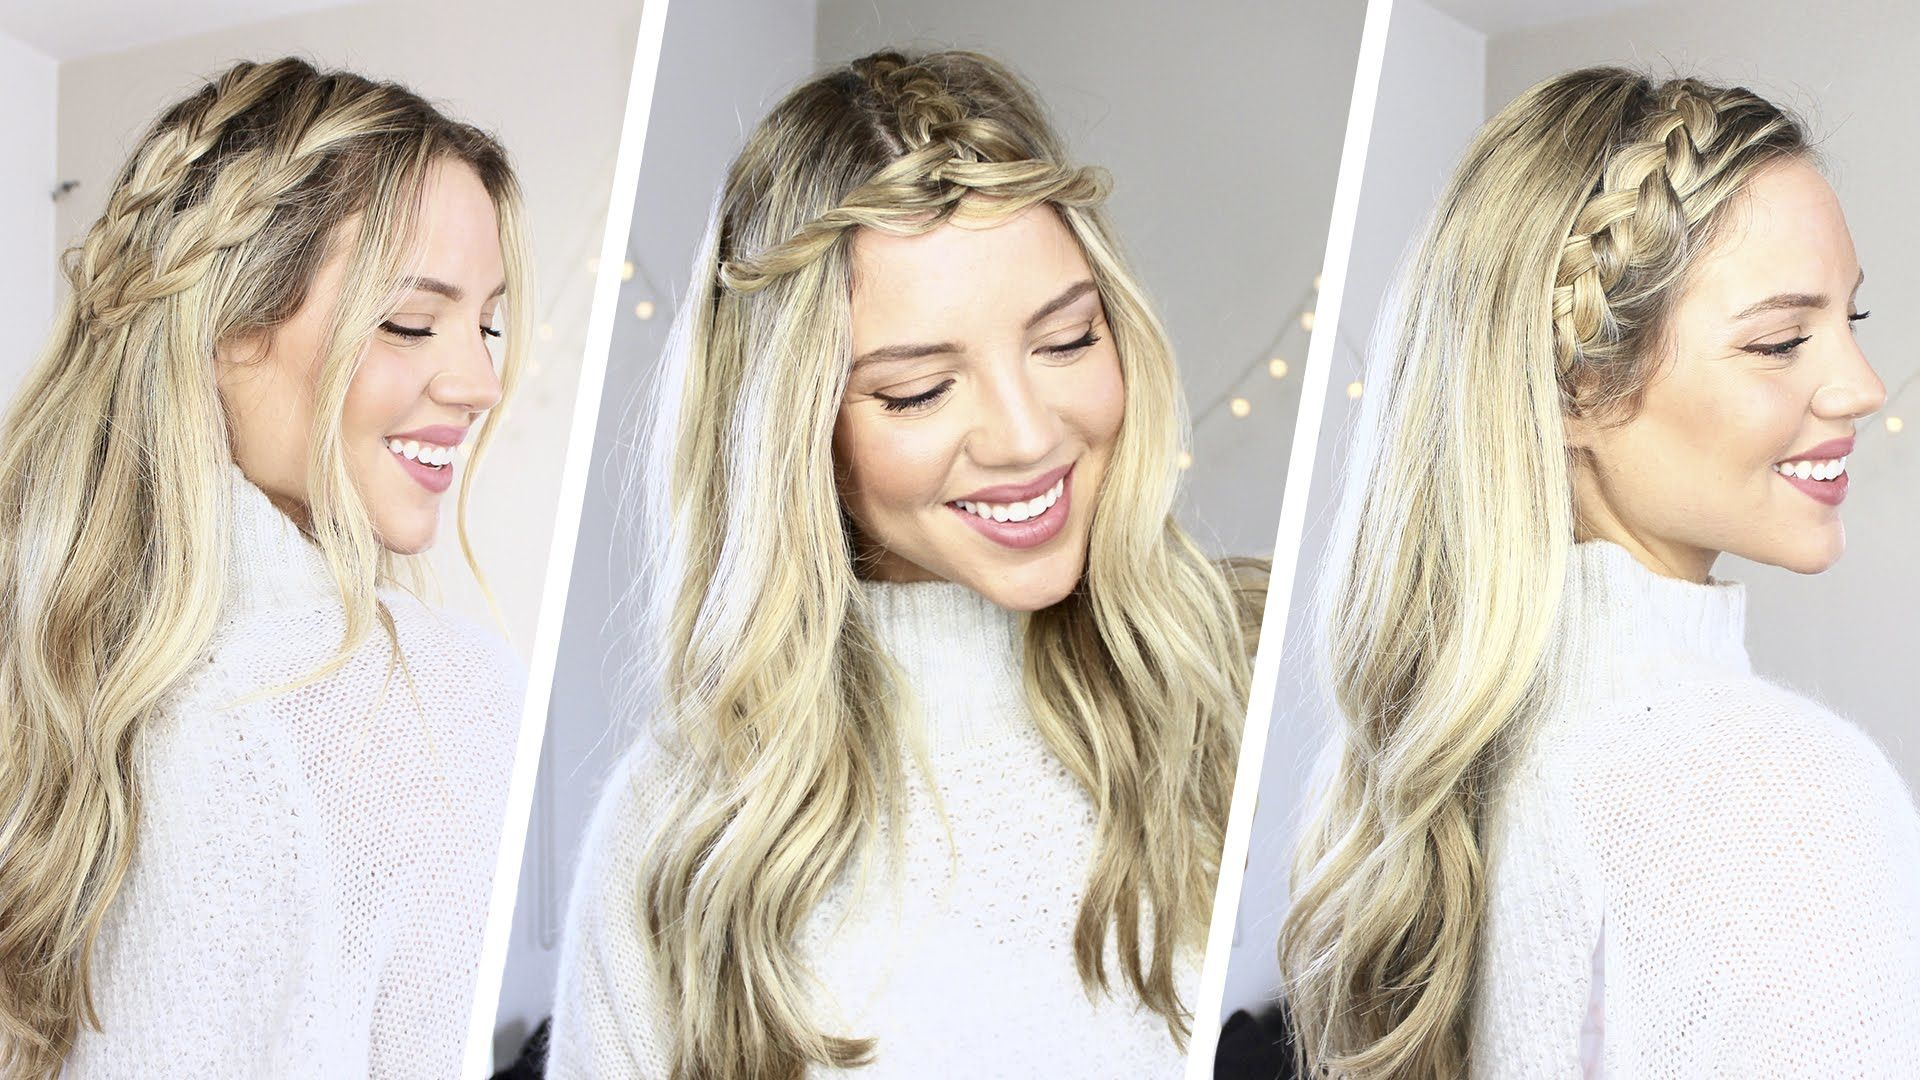 How to 3 Easy Braided Hairstyles Coachella Luxy Hair